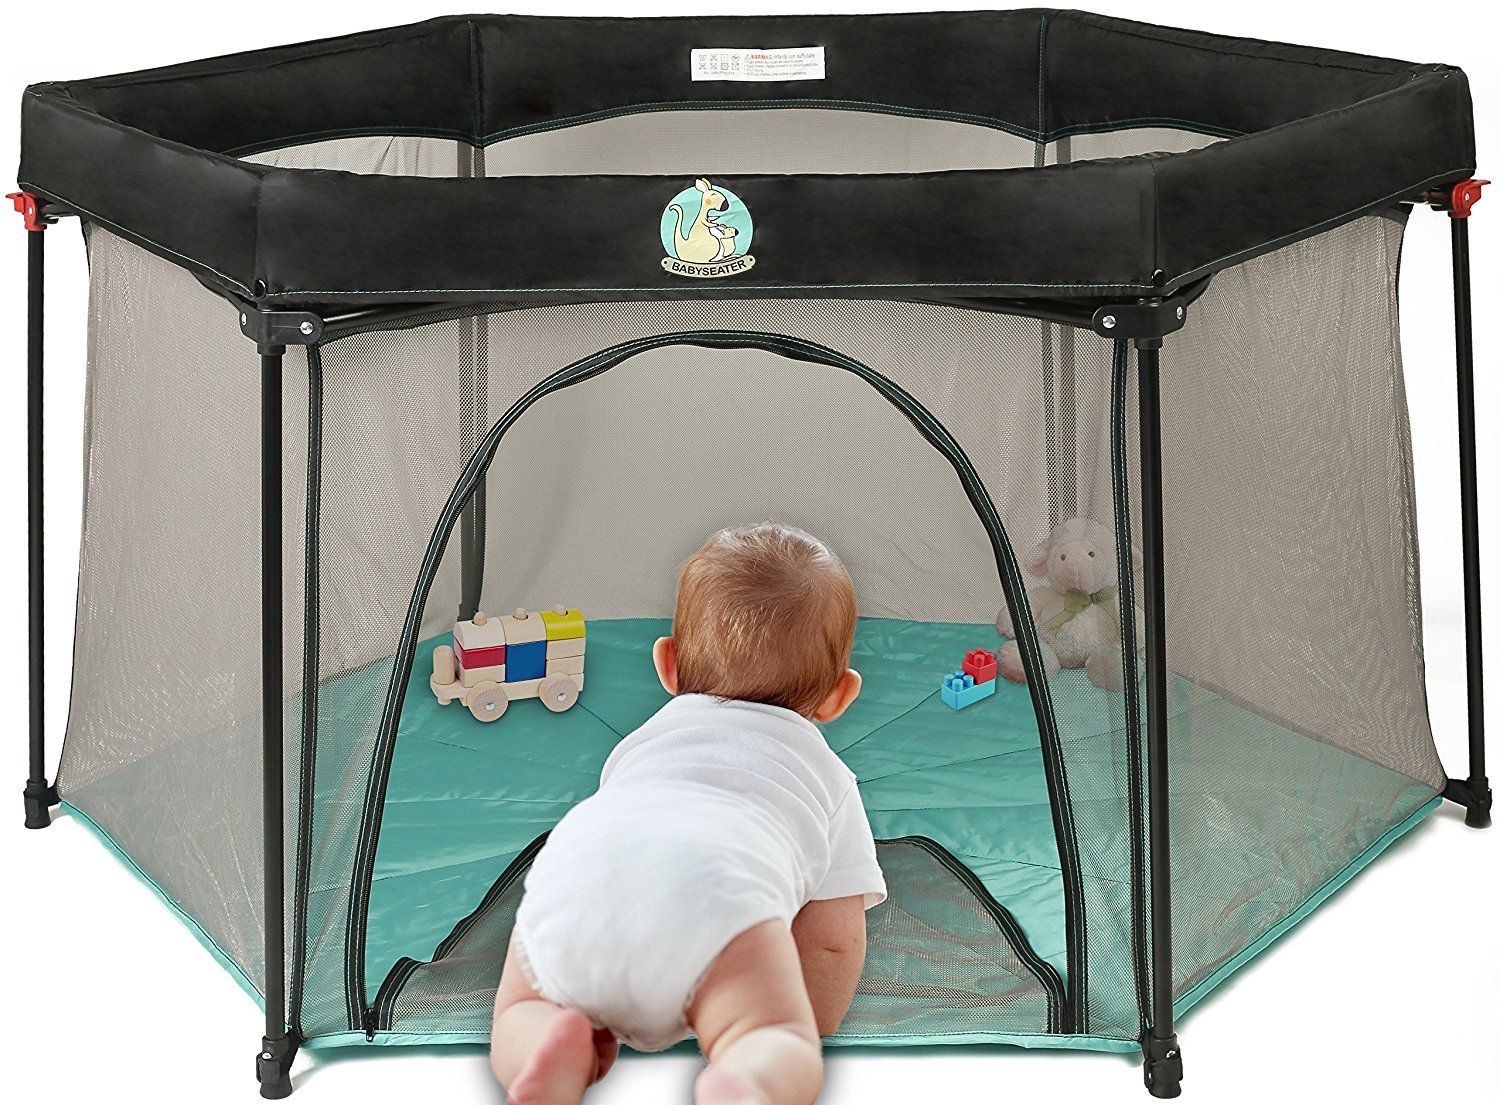 Infant Pack N/' Play Portable Playard Suitable for Indoor or Outdoor Use